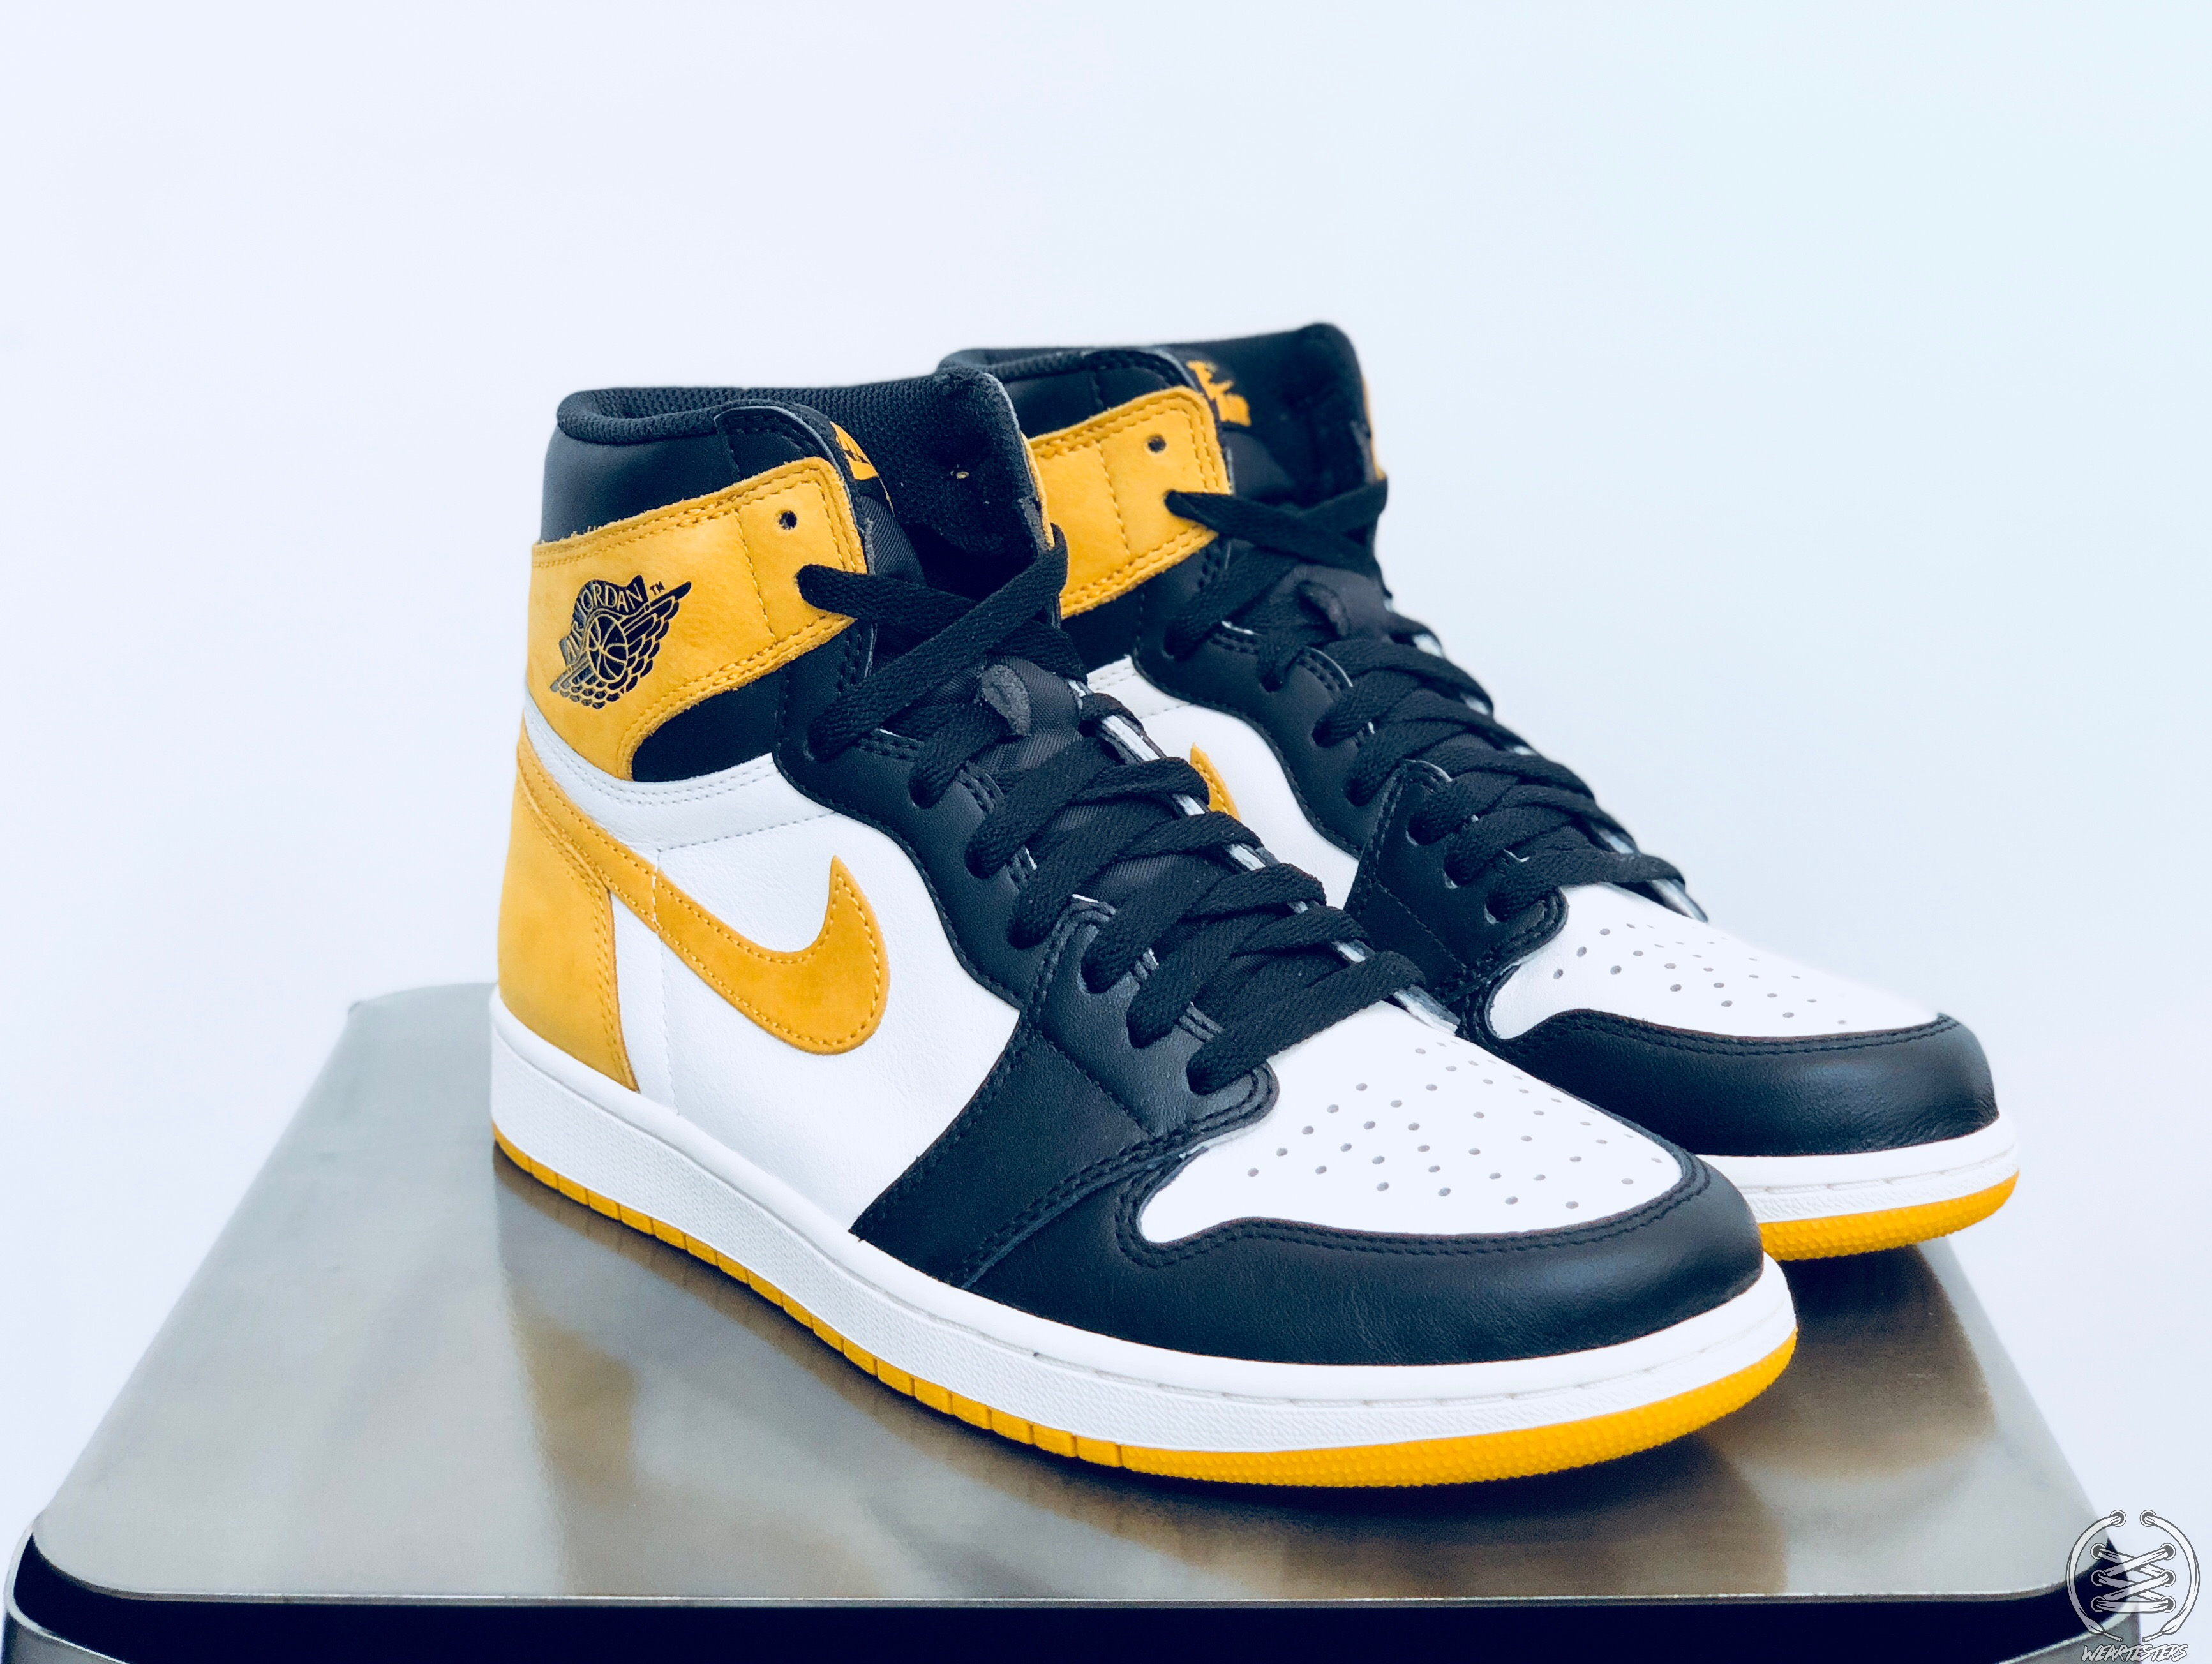 free shipping best wholesaler various styles Air Jordan 1 Yellow Ochre Best Hand in the Game collection 4 ...